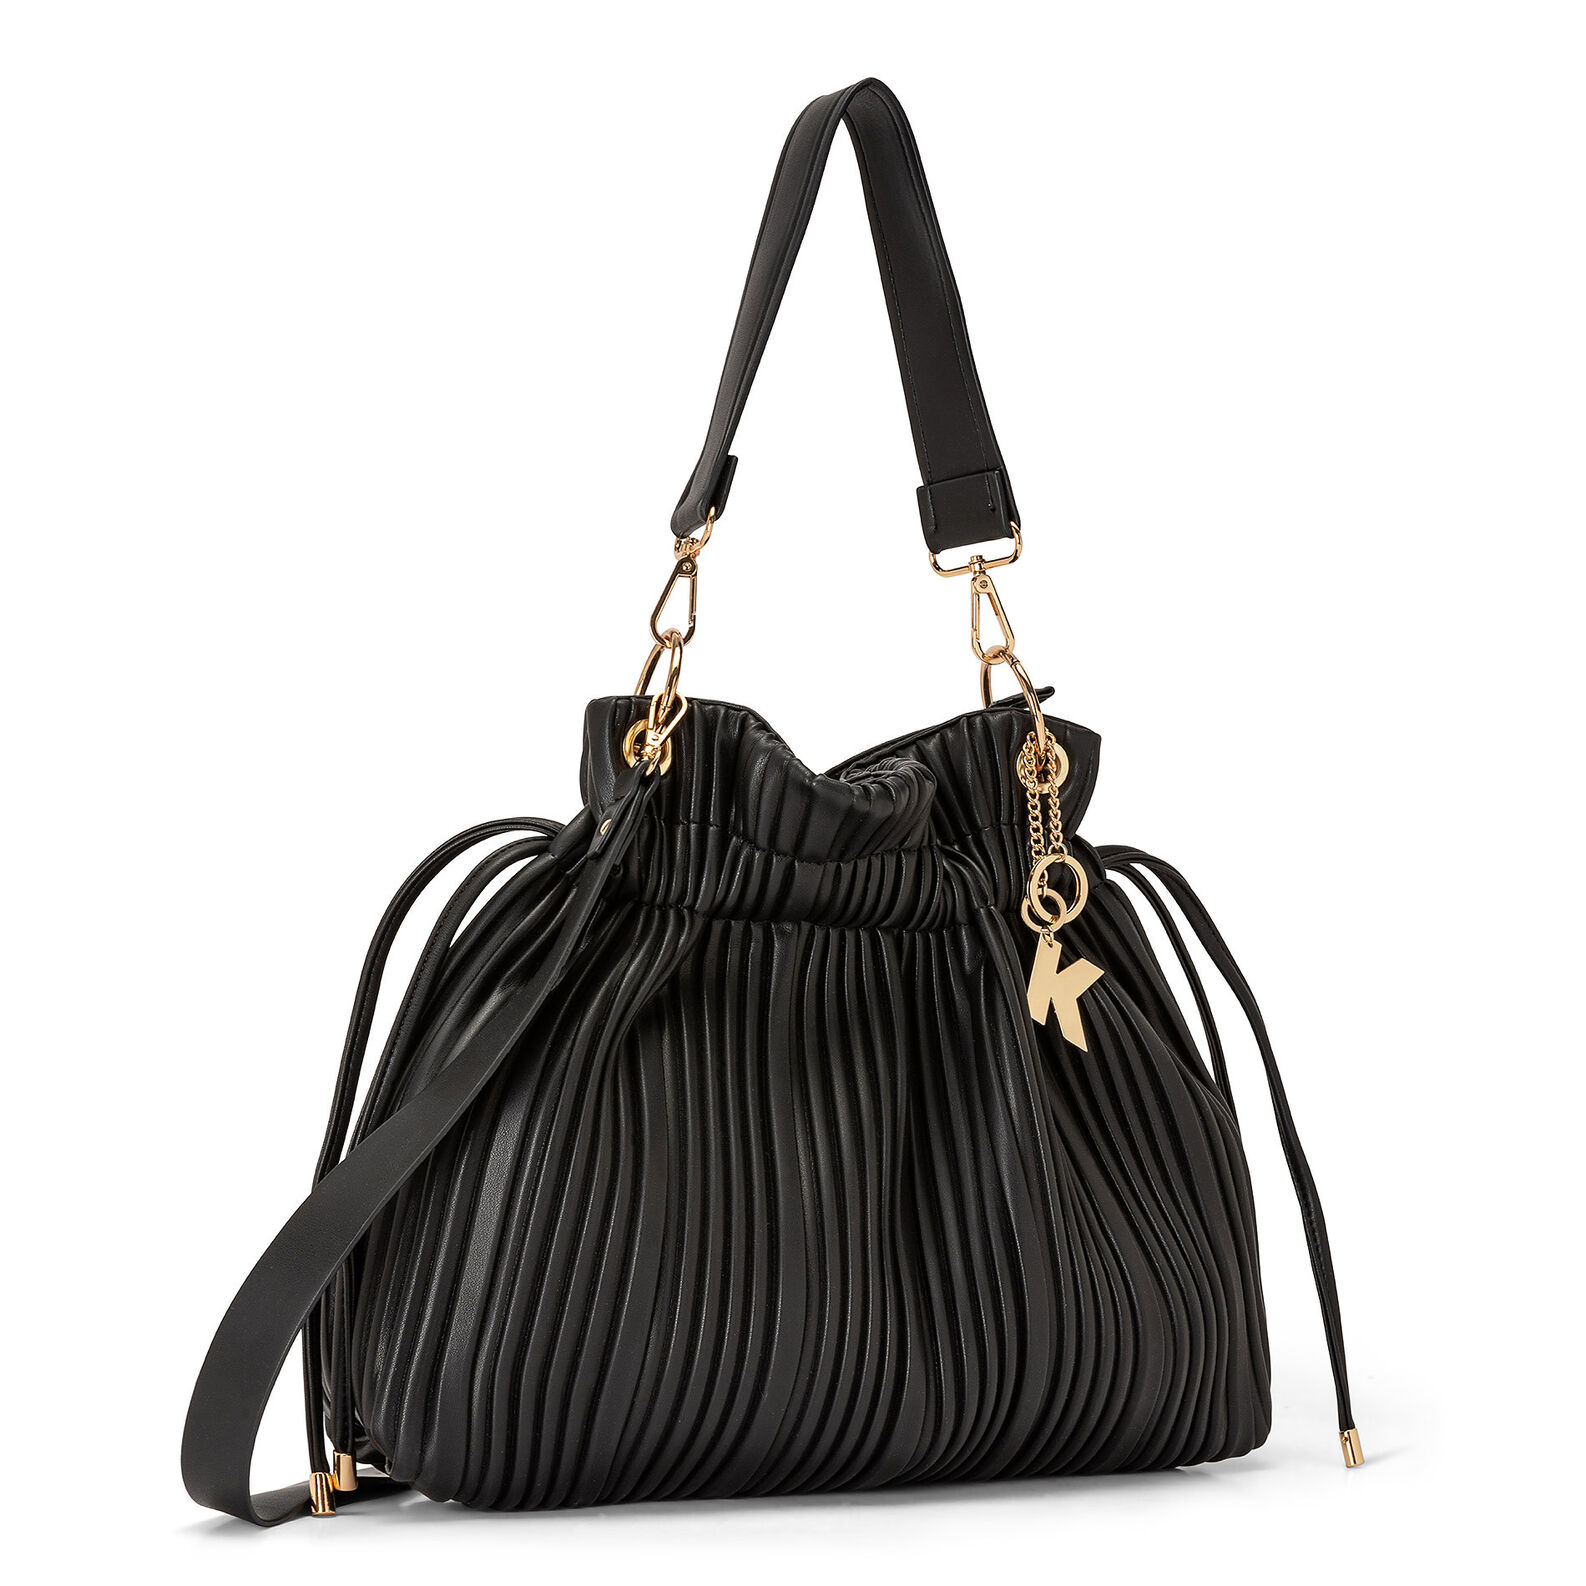 Koan pleated fabric shoulder bag